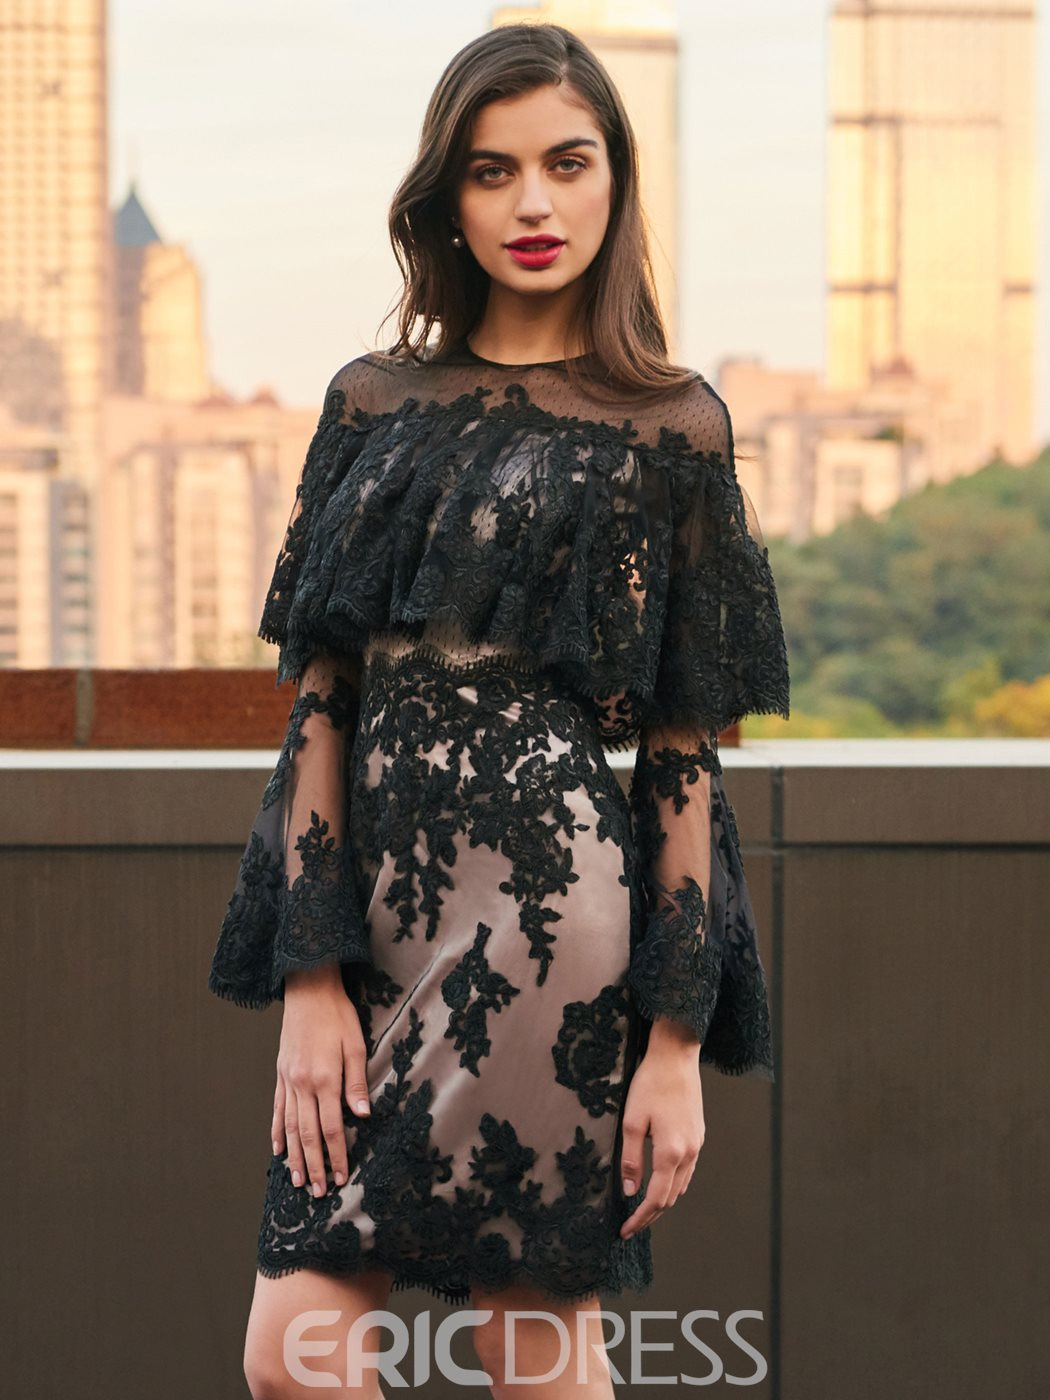 Ericdress Sheath Long Sleeve Knee Length Lace Cocktail Dress ...